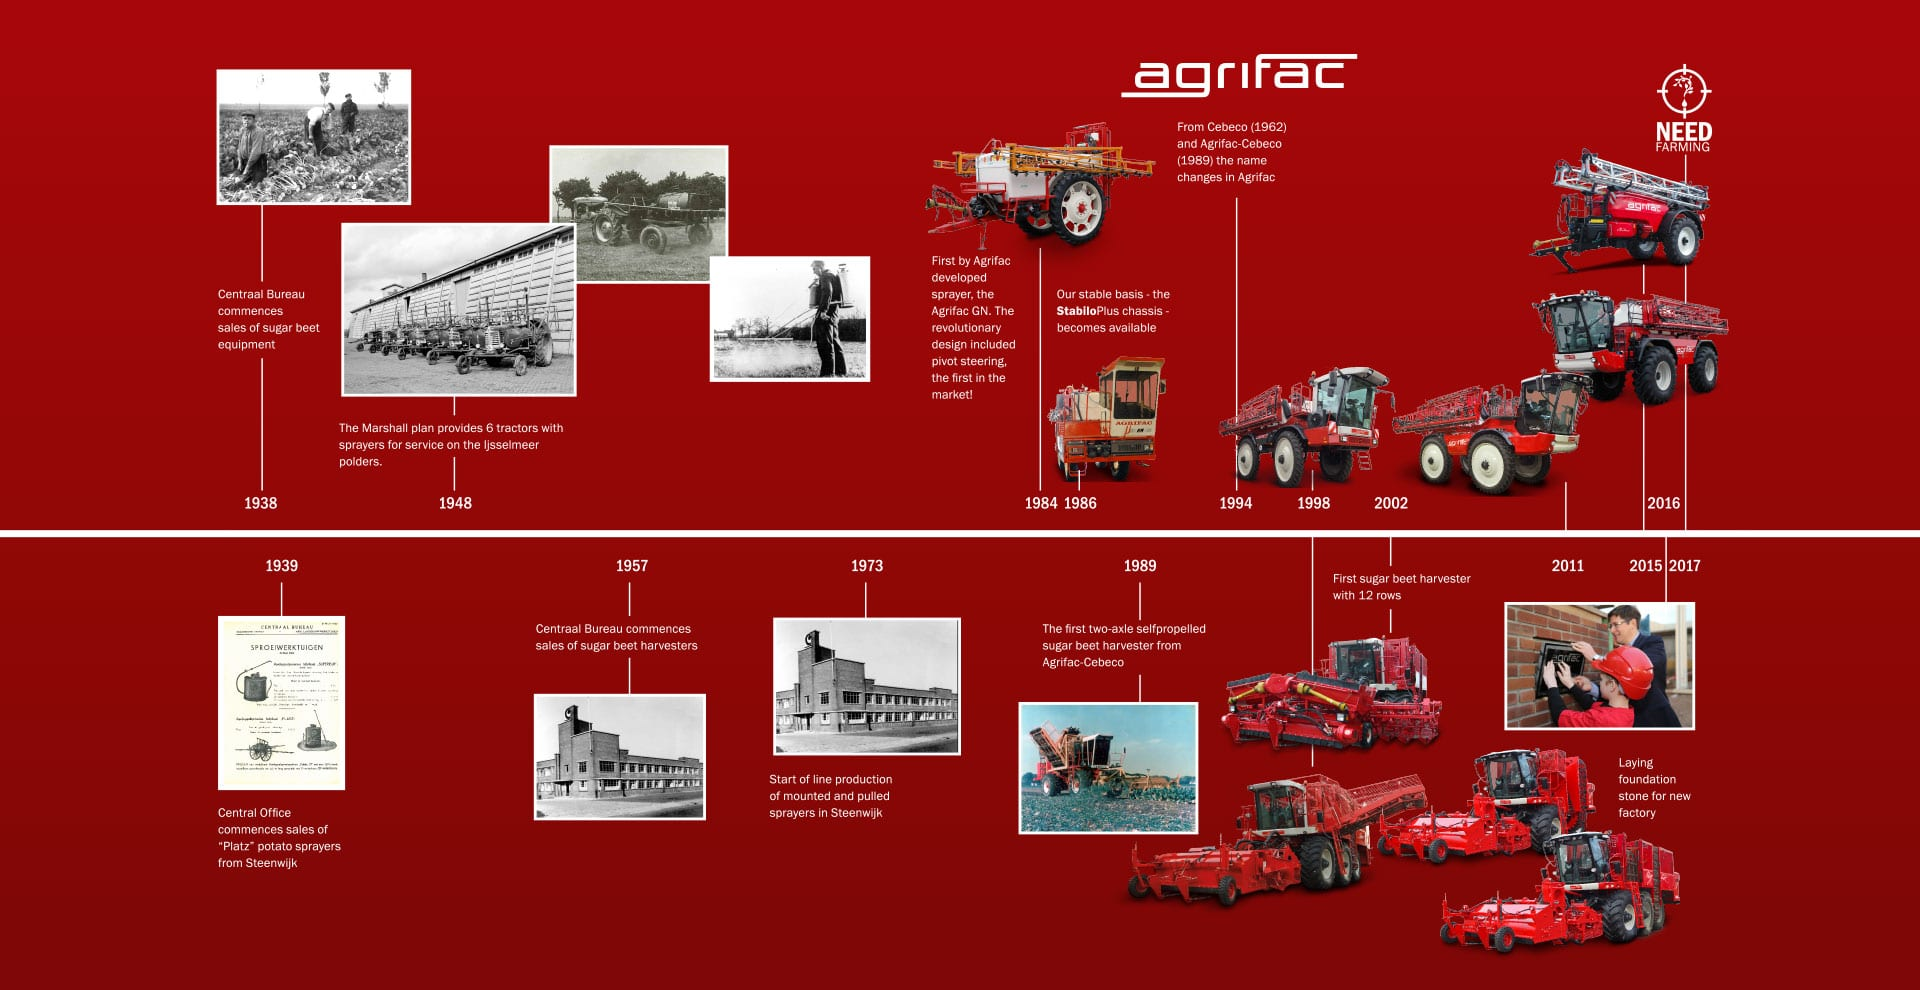 Agrifac machinery timeline